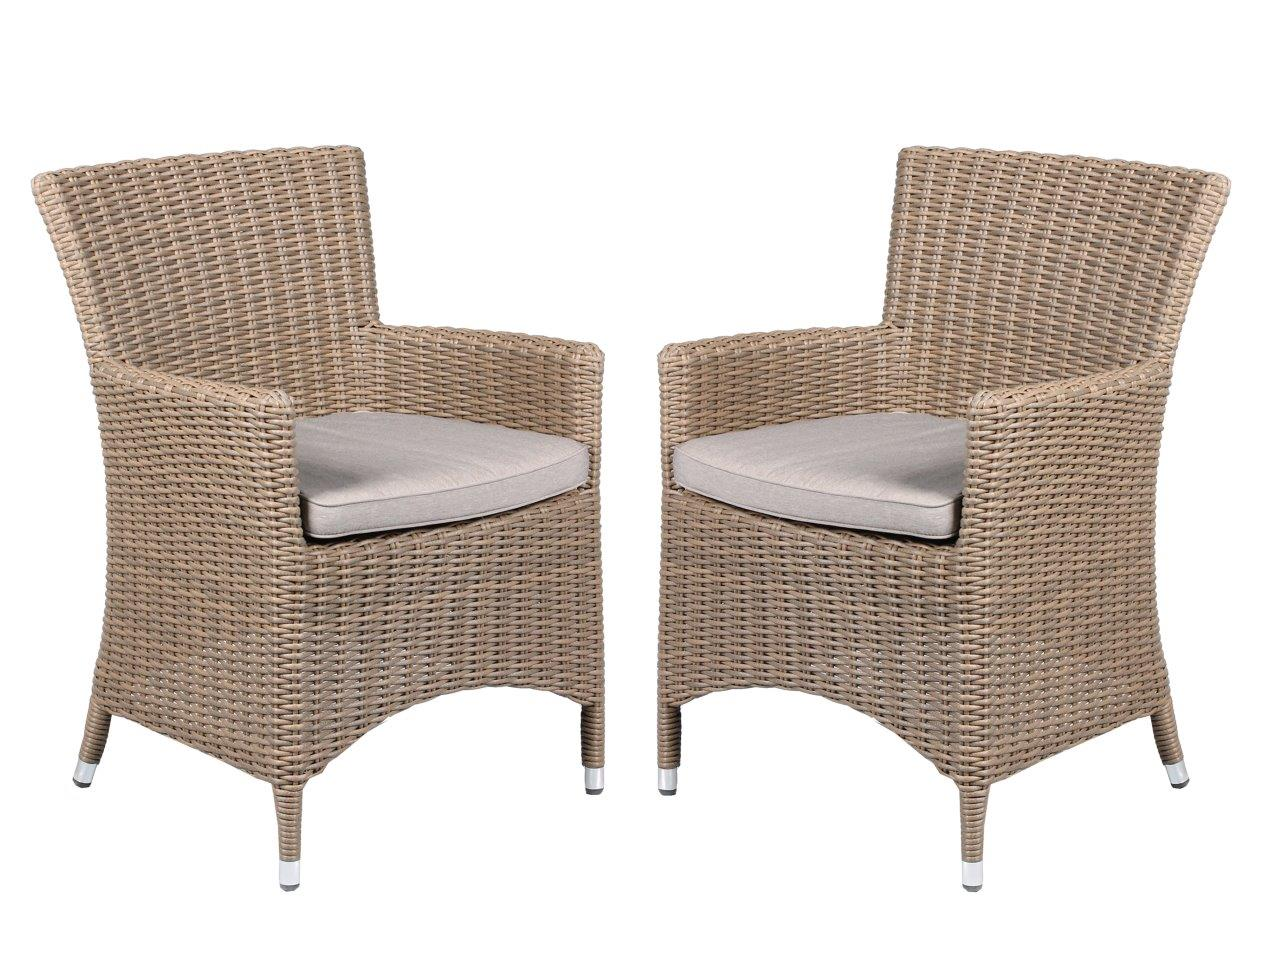 2er set polyrattan sessel beige grau inkl kissen gartenstuhl esszimmer spar set ebay. Black Bedroom Furniture Sets. Home Design Ideas